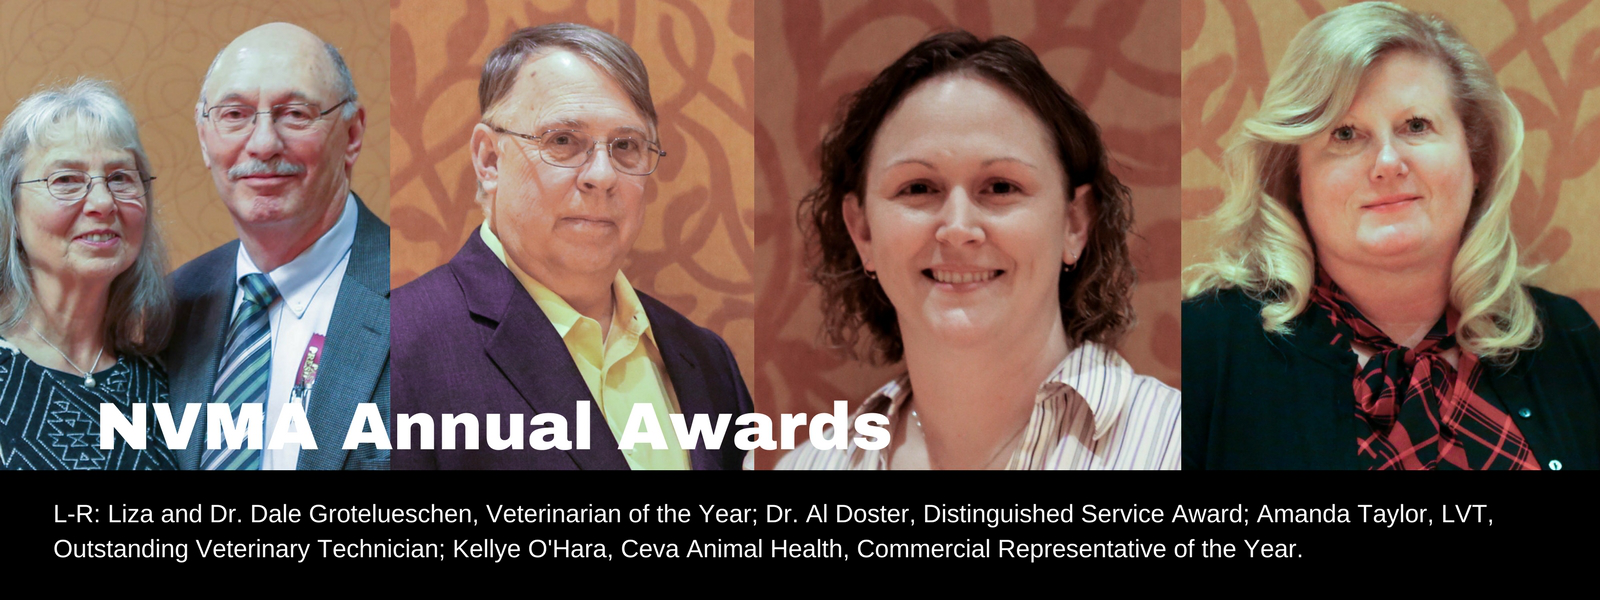 NVMA Annual Awards honorees.